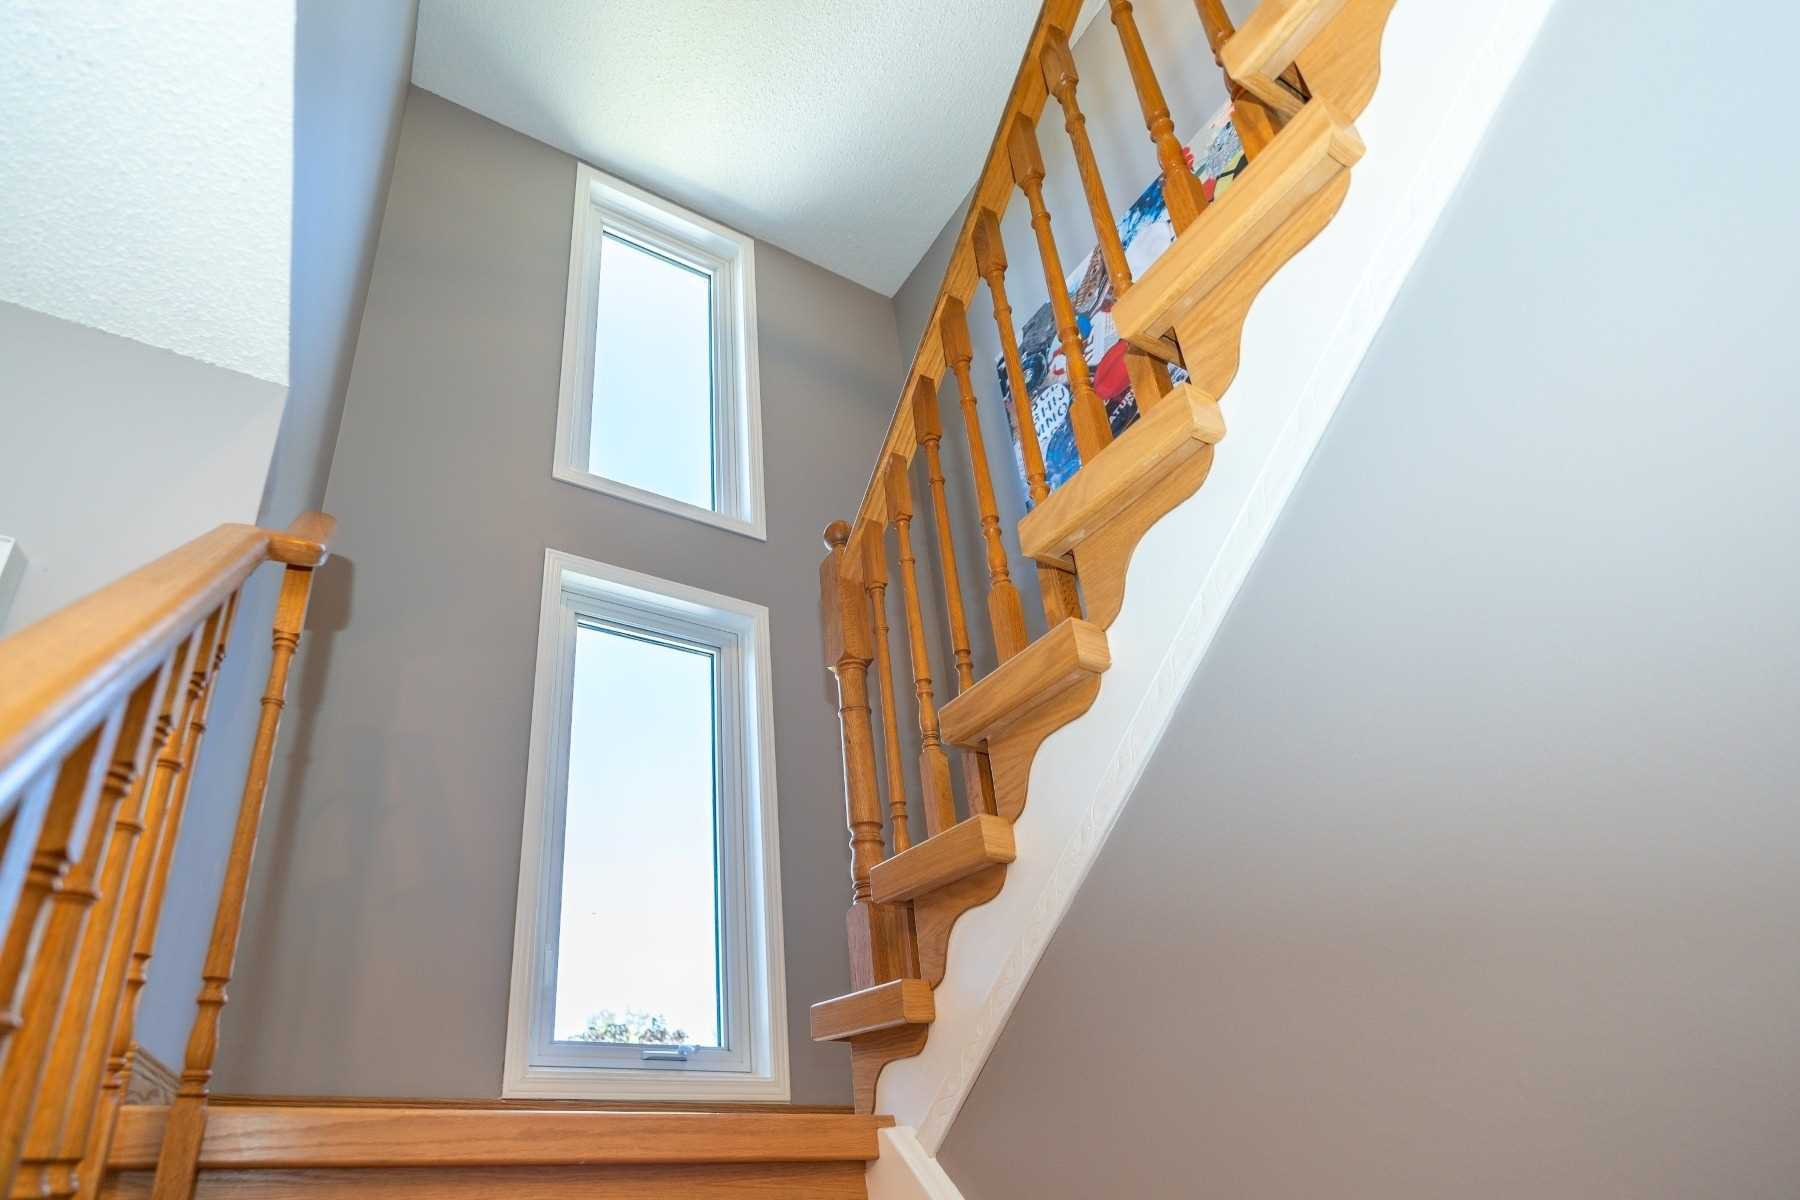 Photo 18: Photos: 1153 Snowberry Court in Oshawa: Pinecrest House (2-Storey) for sale : MLS®# E4794796